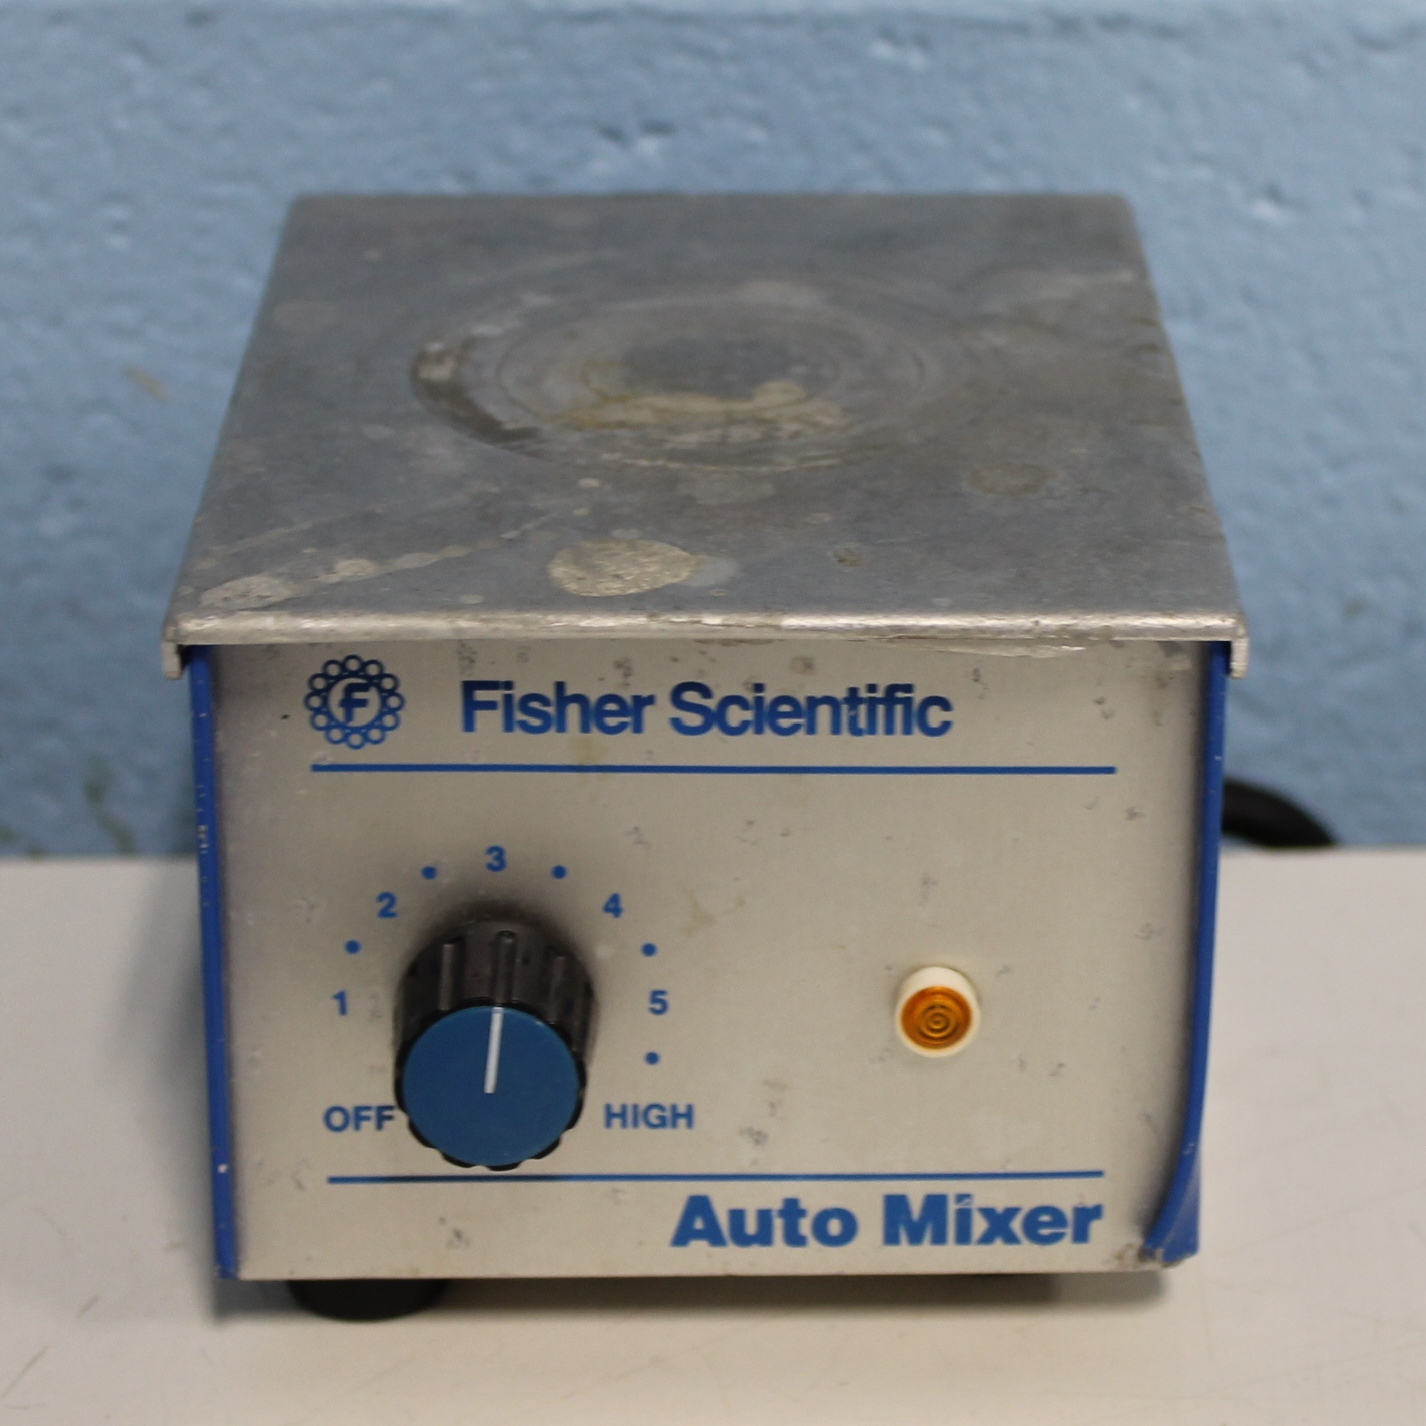 Fisher Scientific Auto Mixer Image